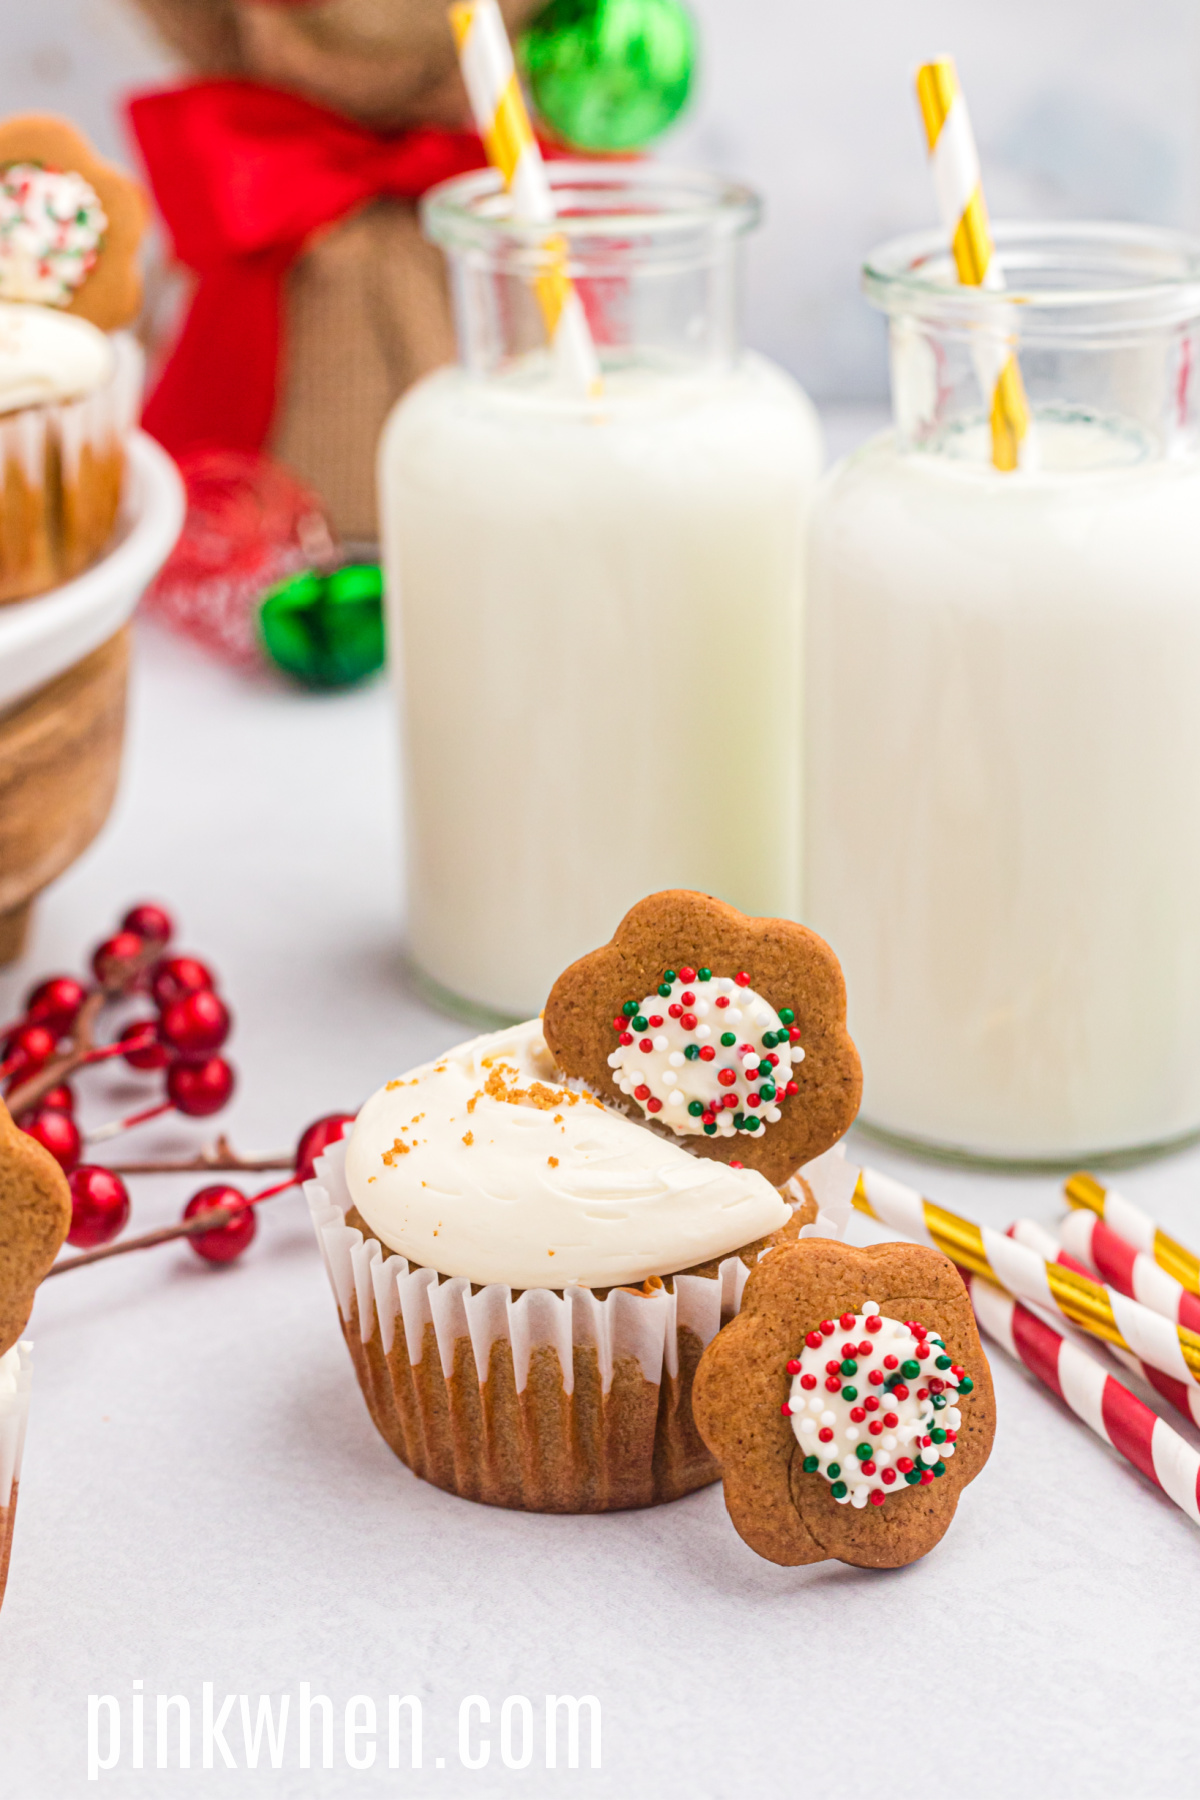 Gingerbread cupcake on a table with cookies and glasses of milk.